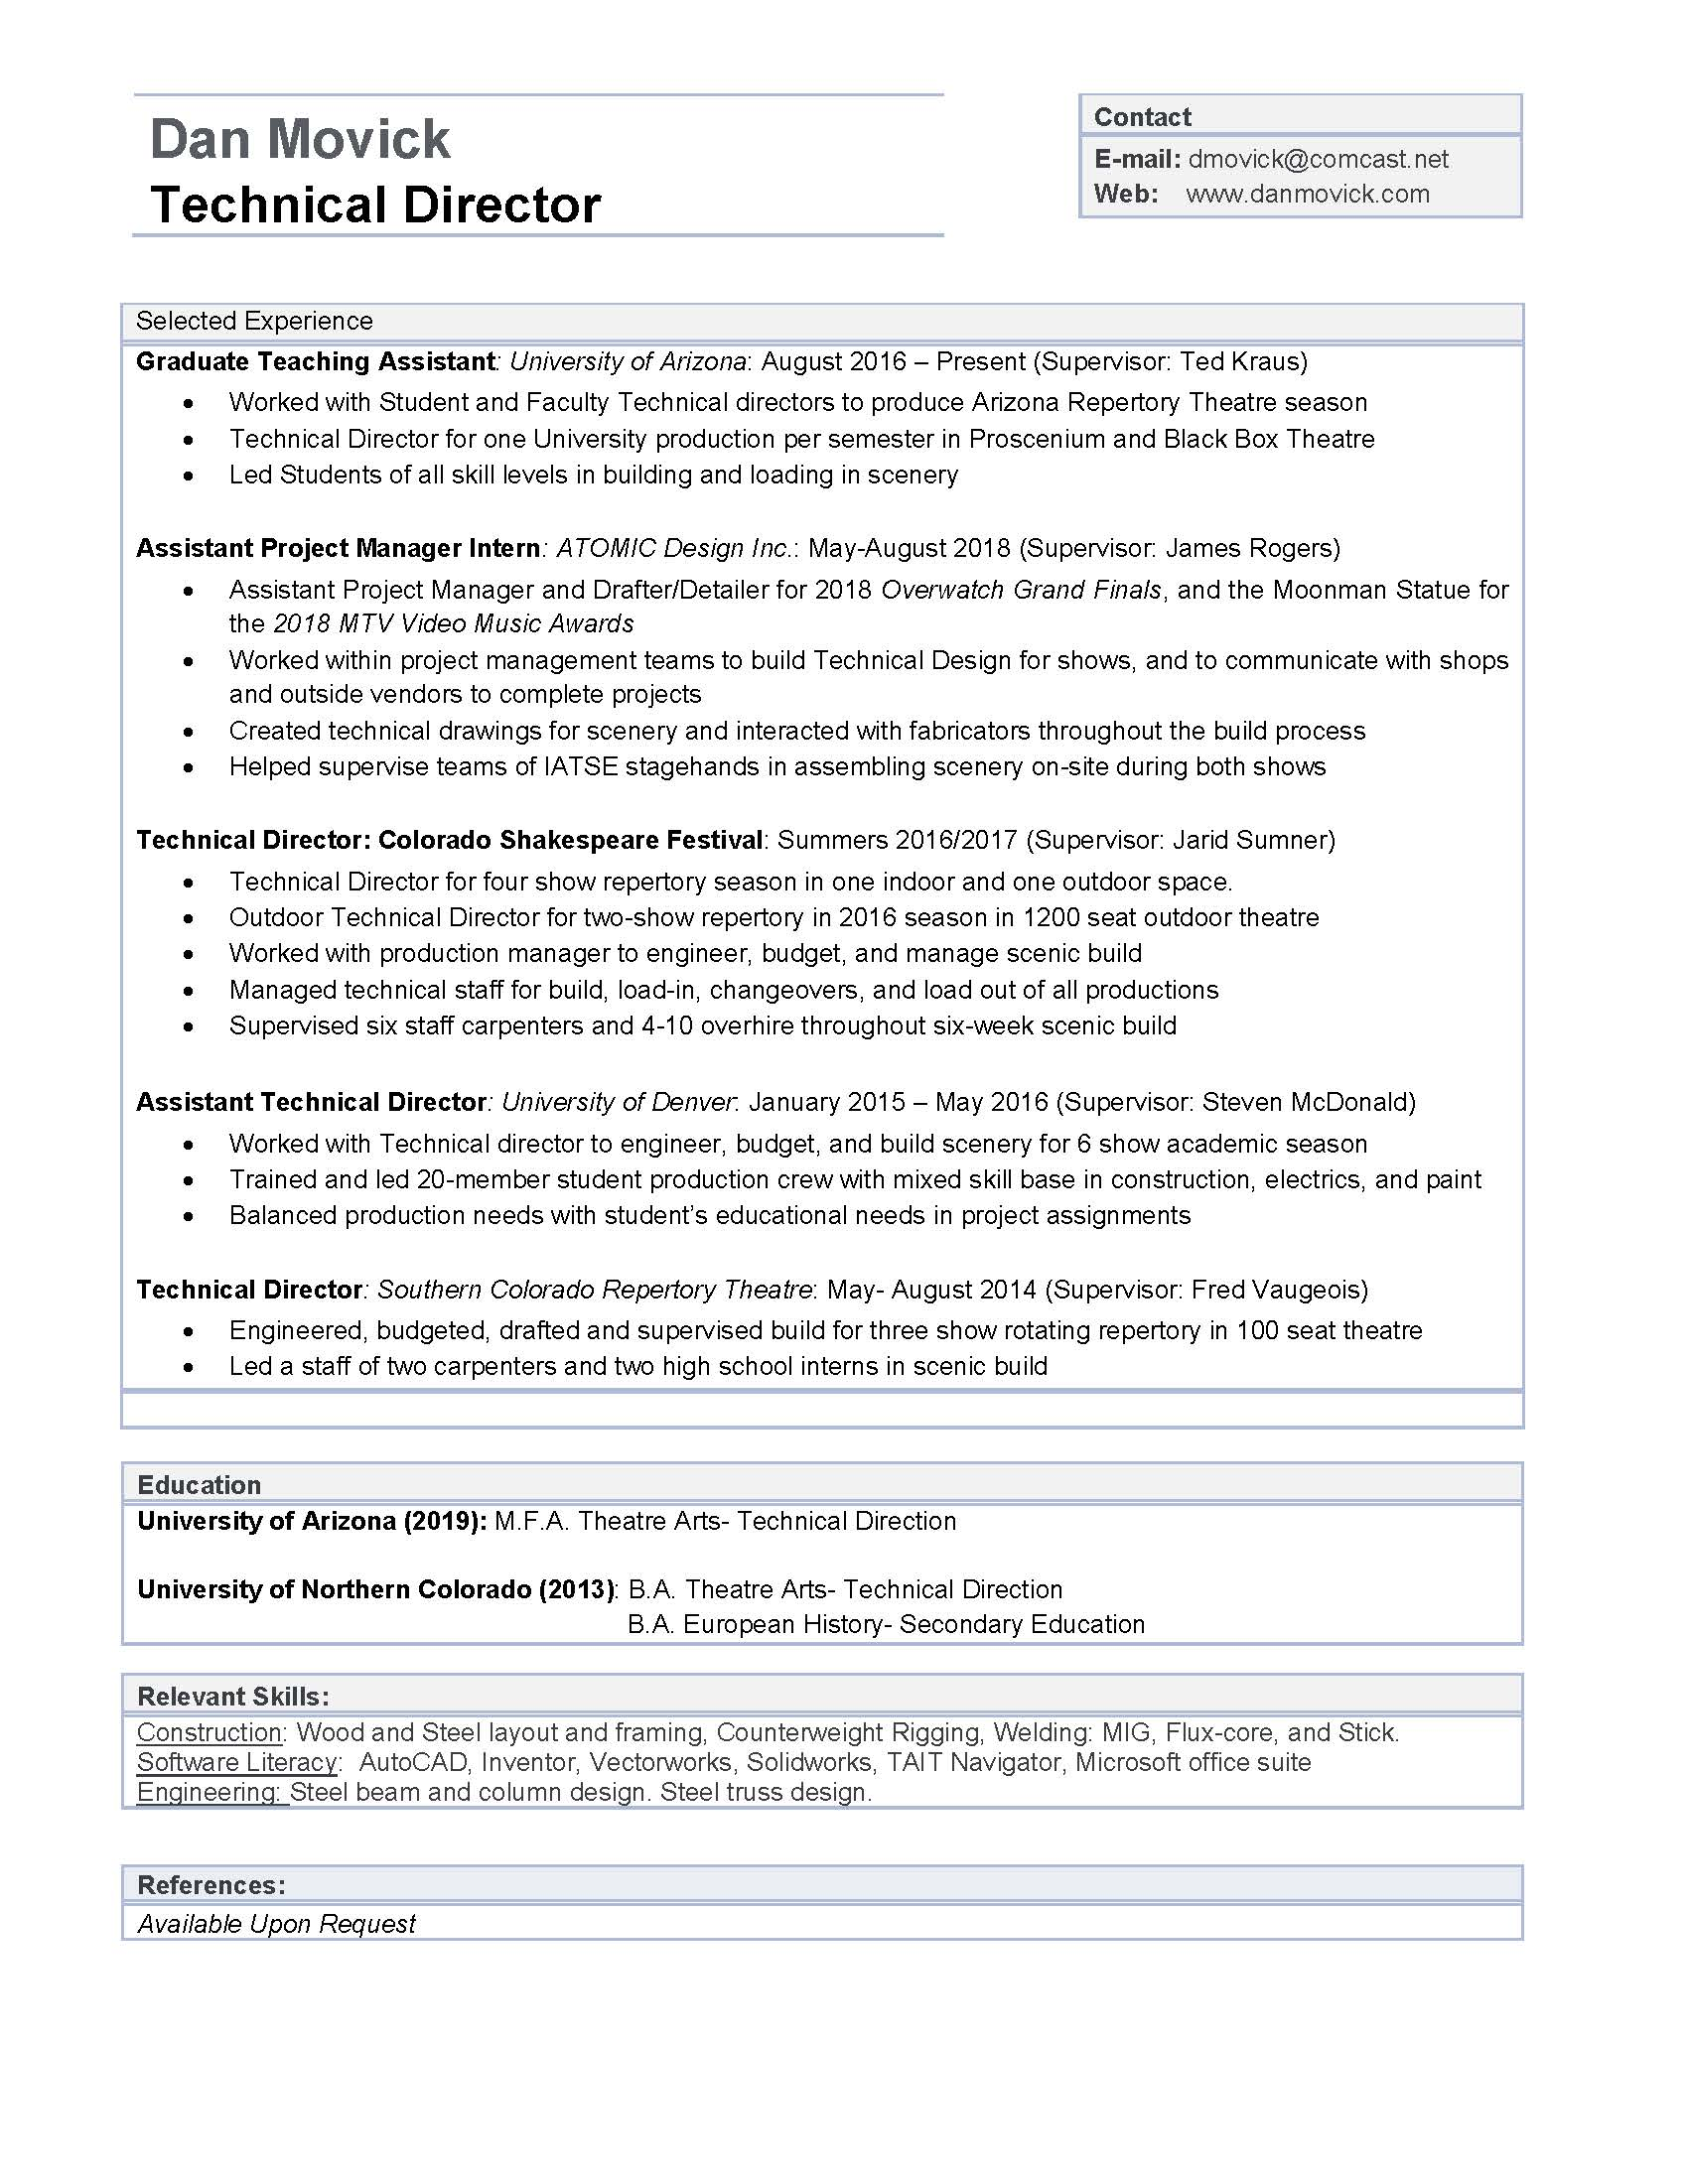 Dan Movick Resume - Fall 2018 Contacts Removed.jpg